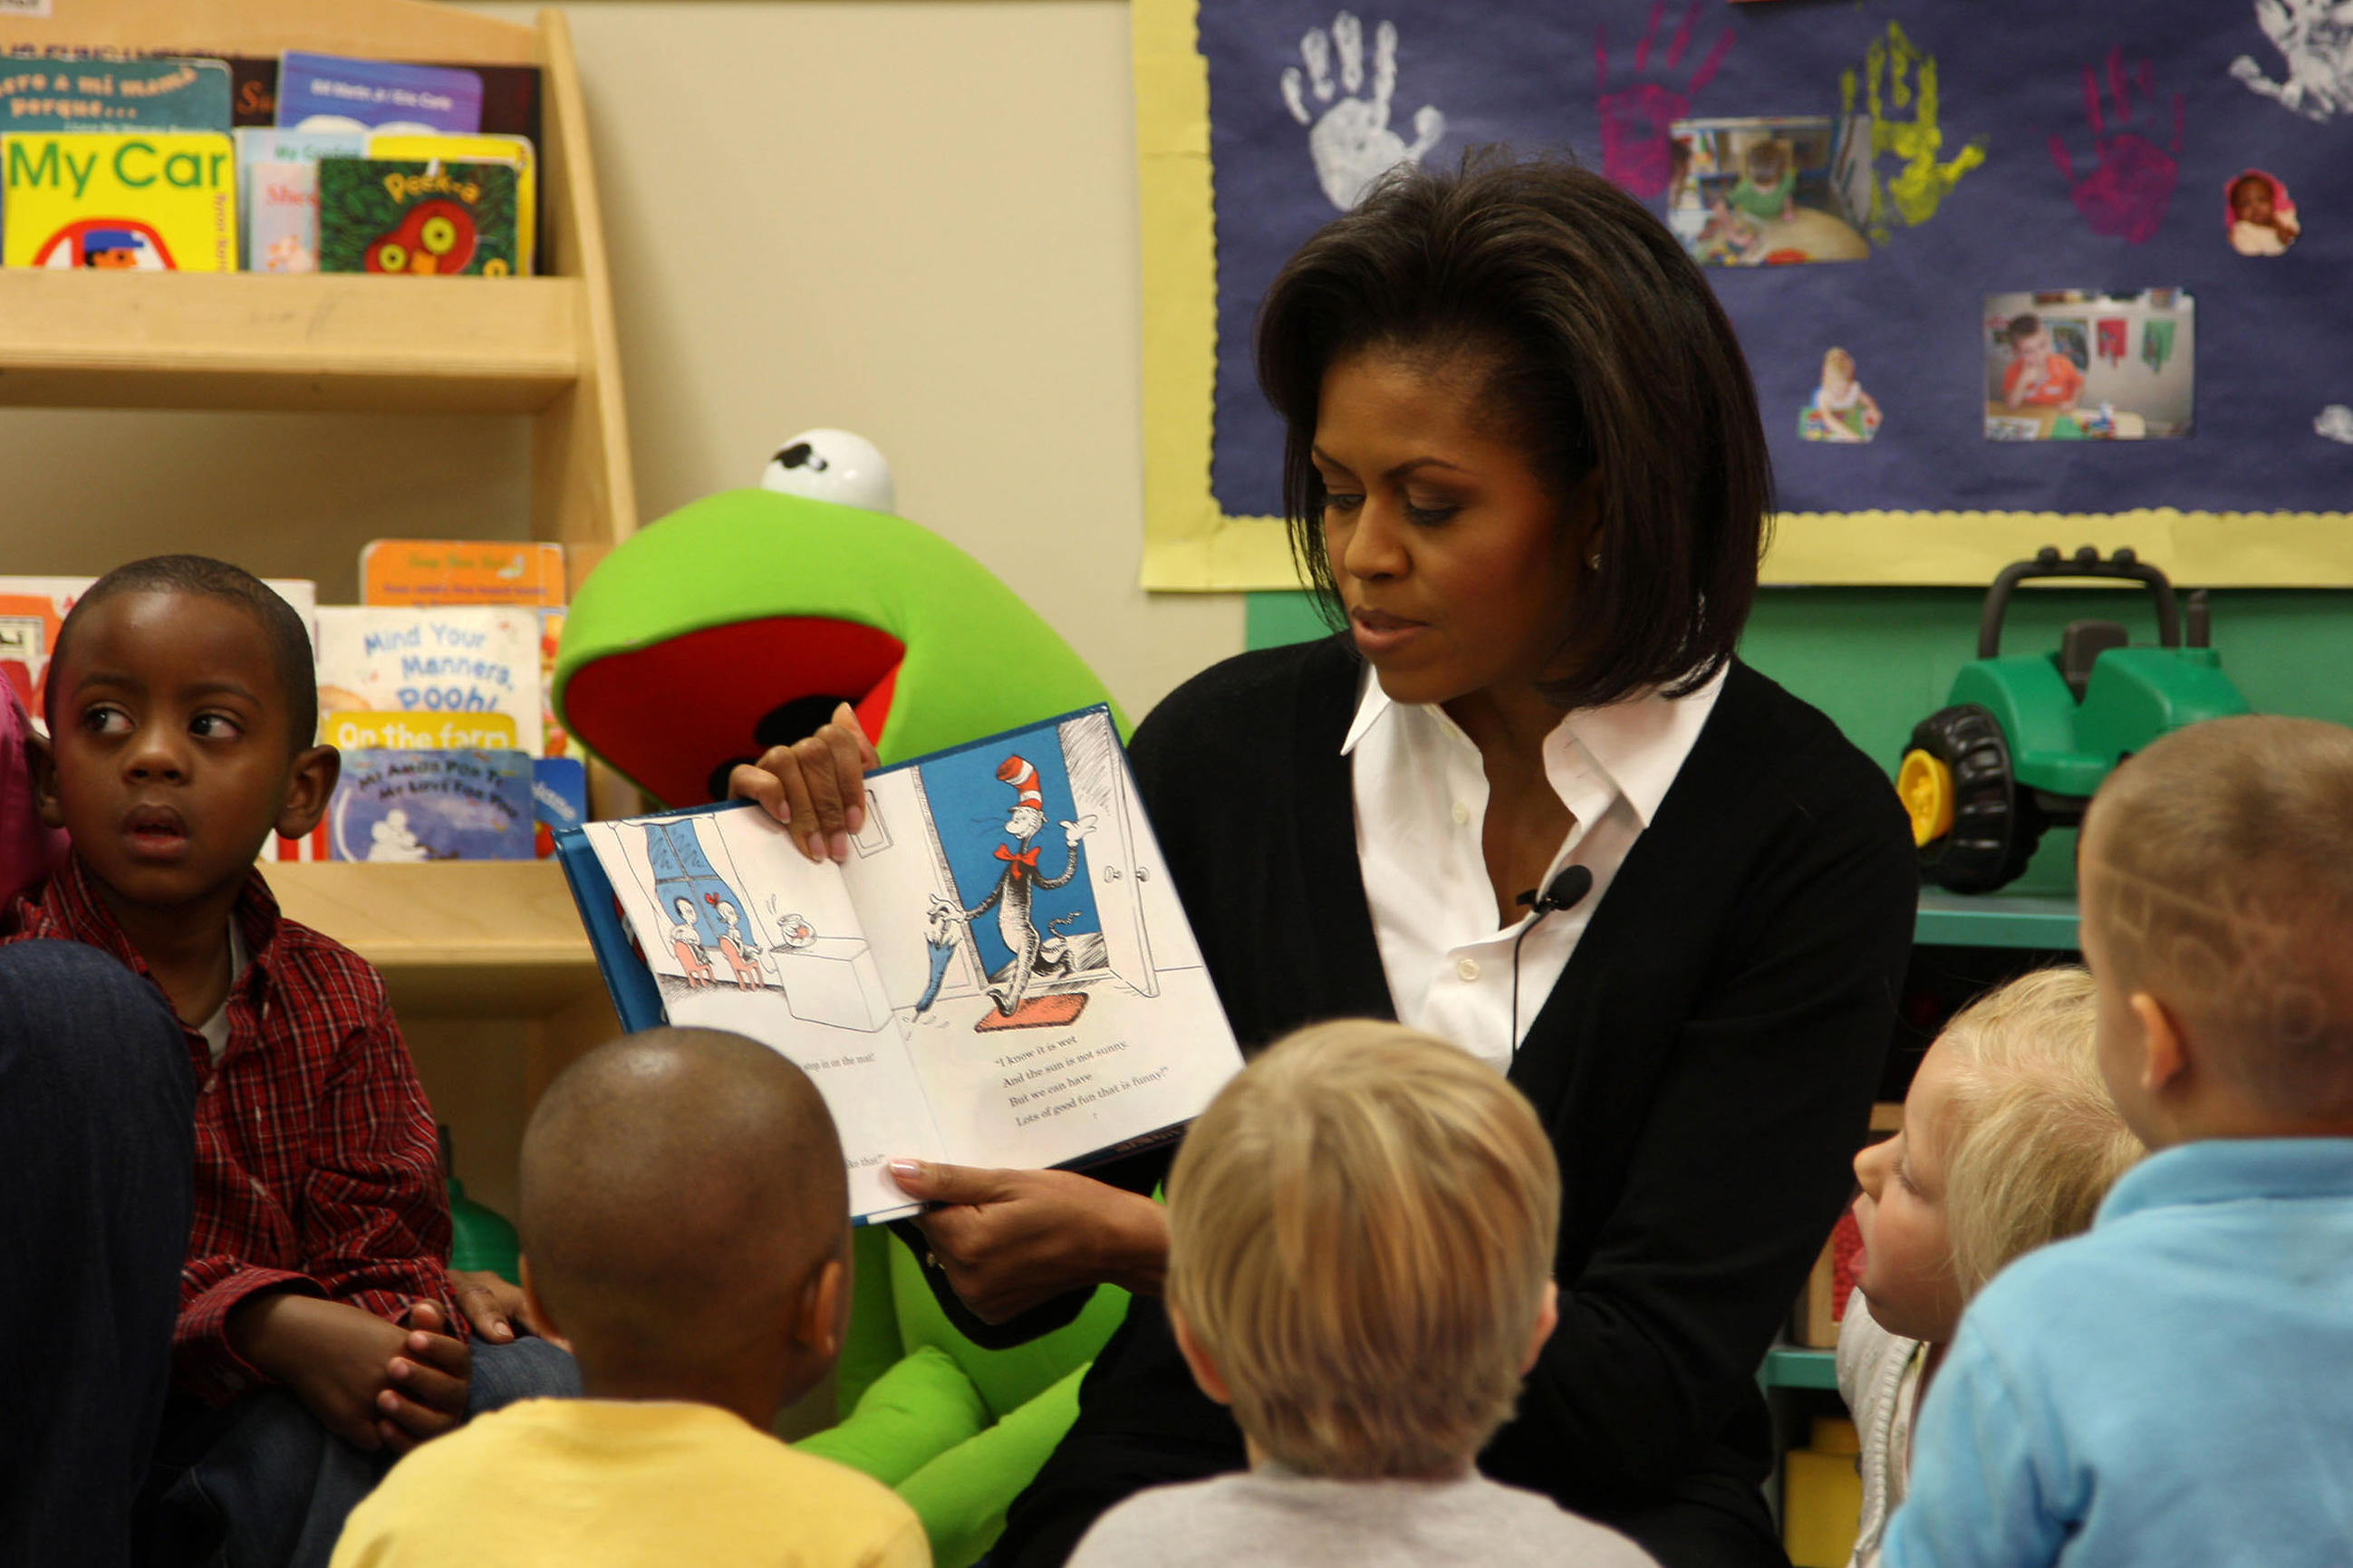 Michelle Obama reads The Cat In The Hat